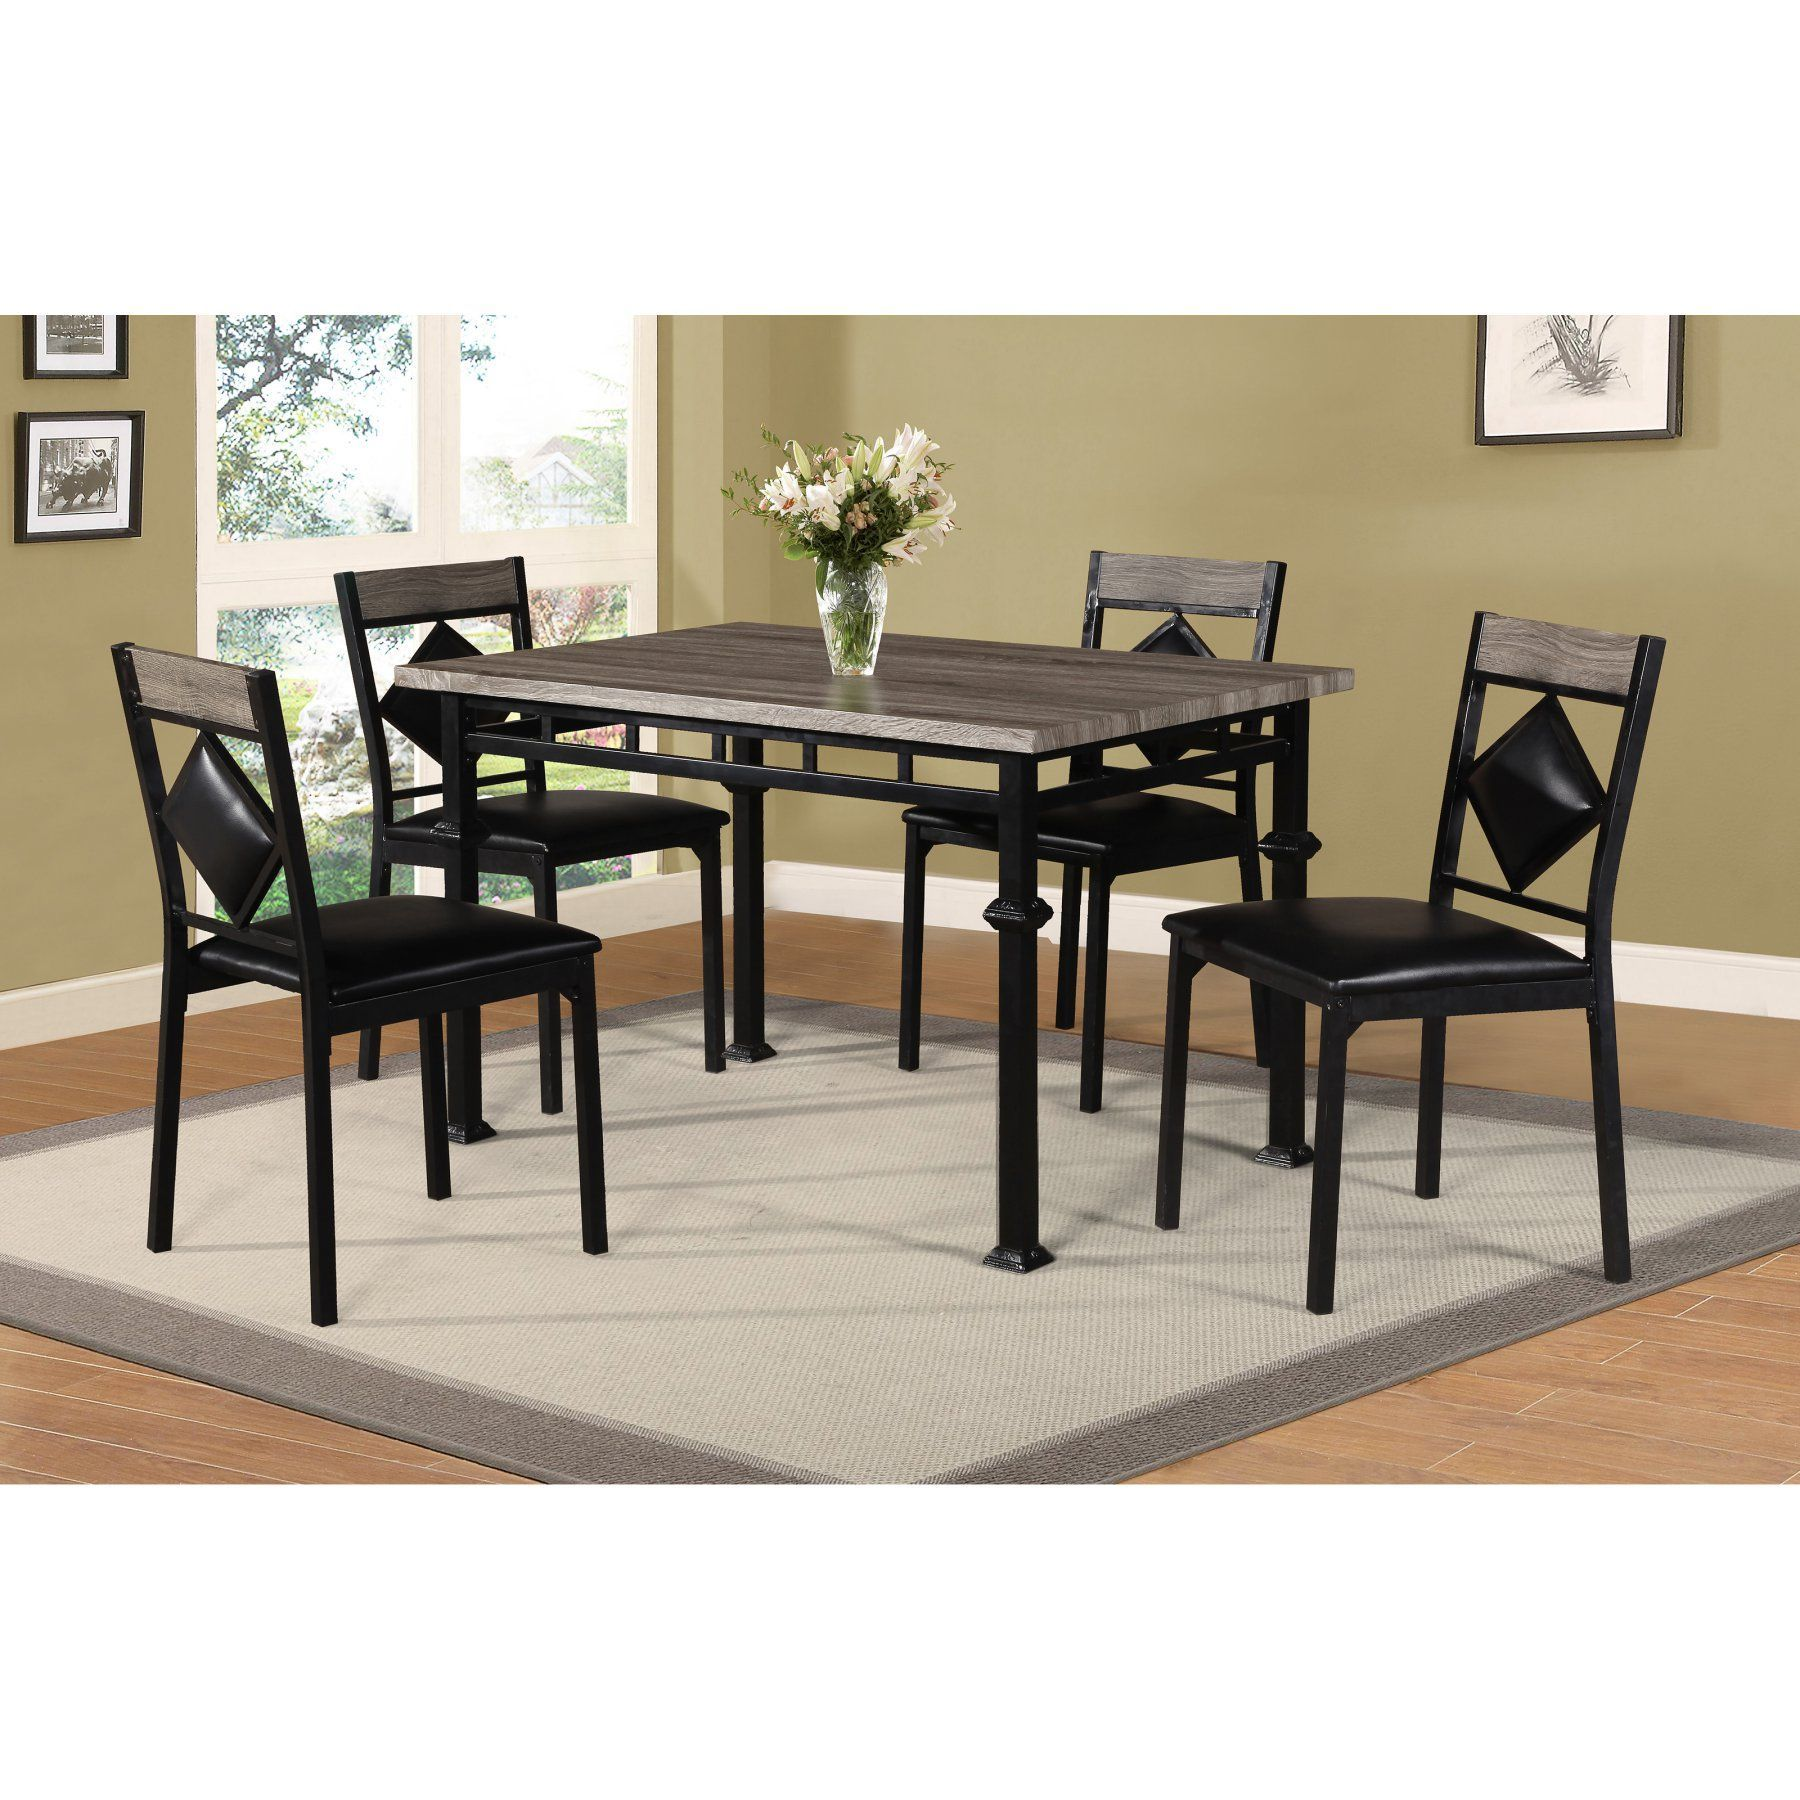 home source industries 5 piece metal dining table set 4395 products